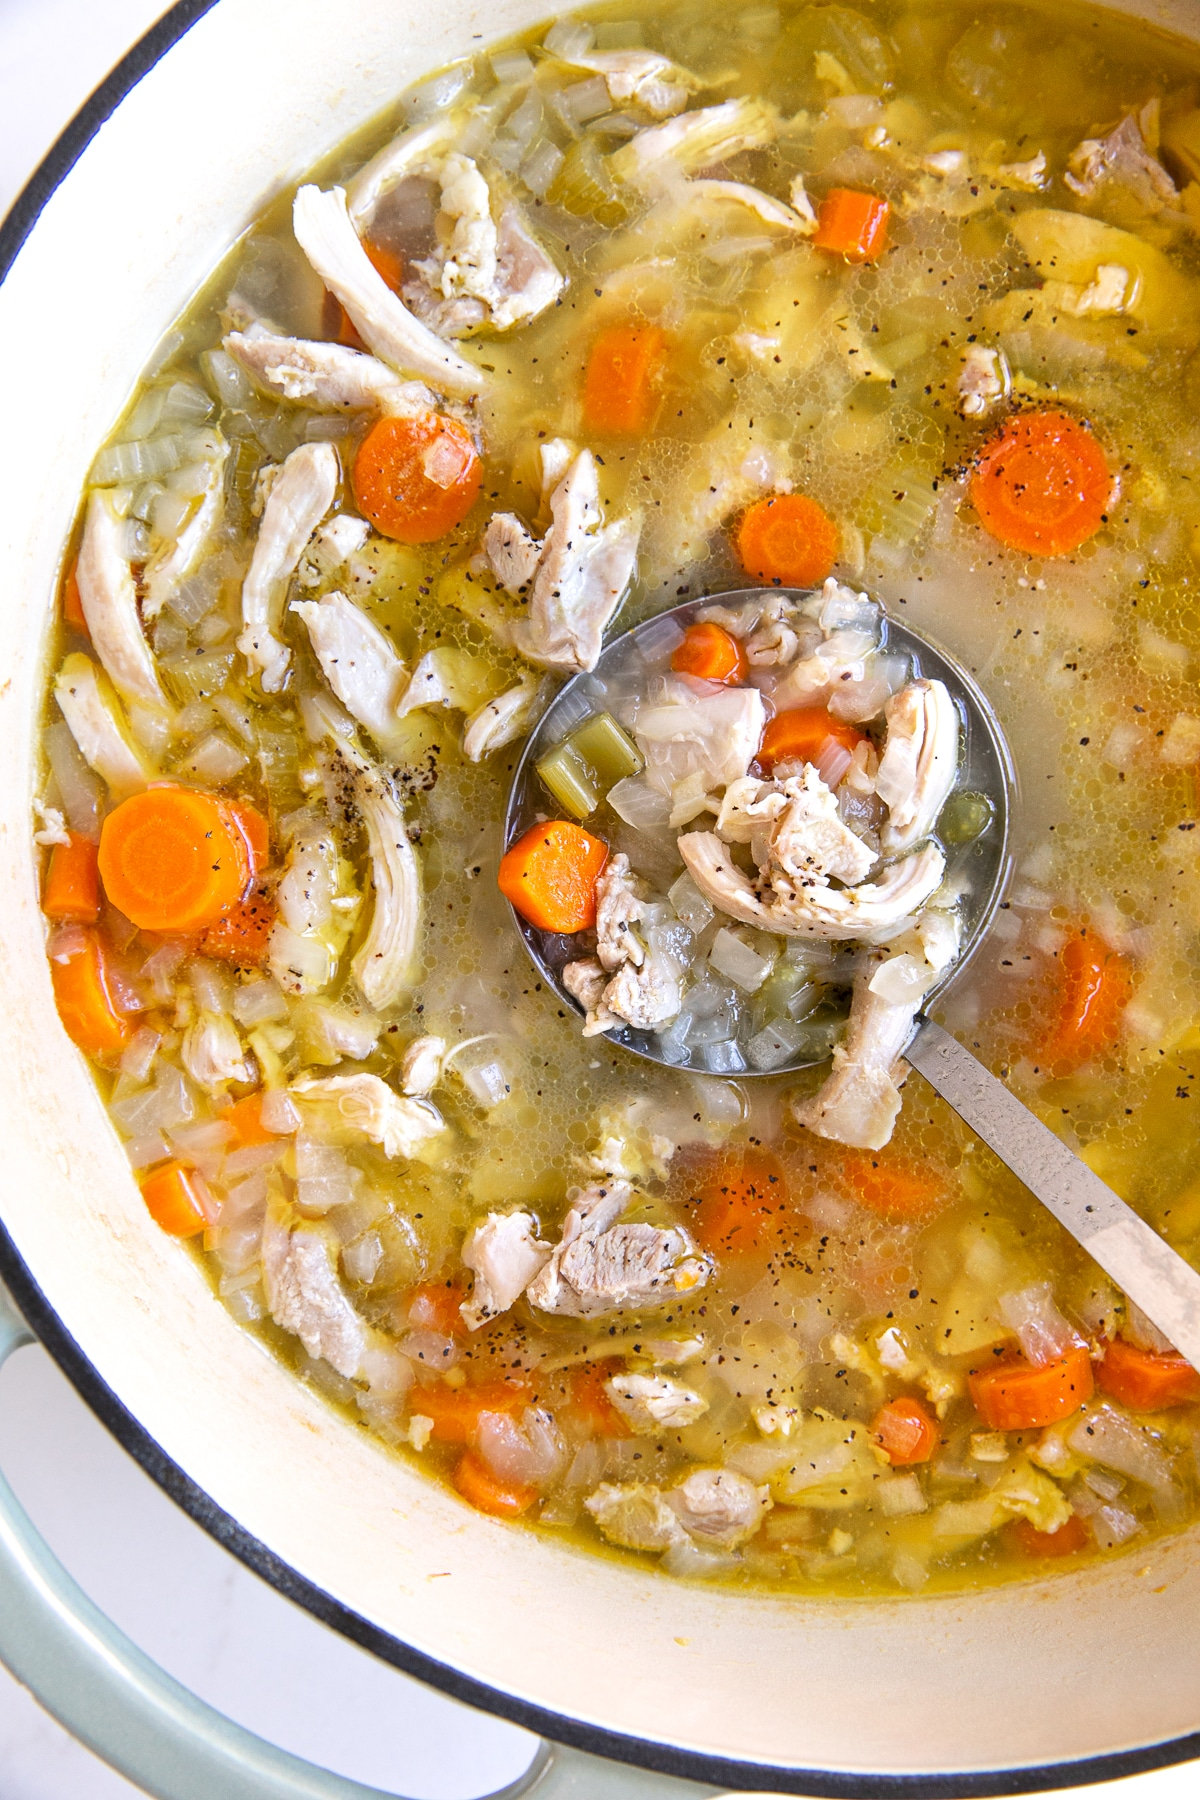 Overhead image of a large Dutch oven filled with homemade chicken and barley soup filled with carrots, celery, and onions.